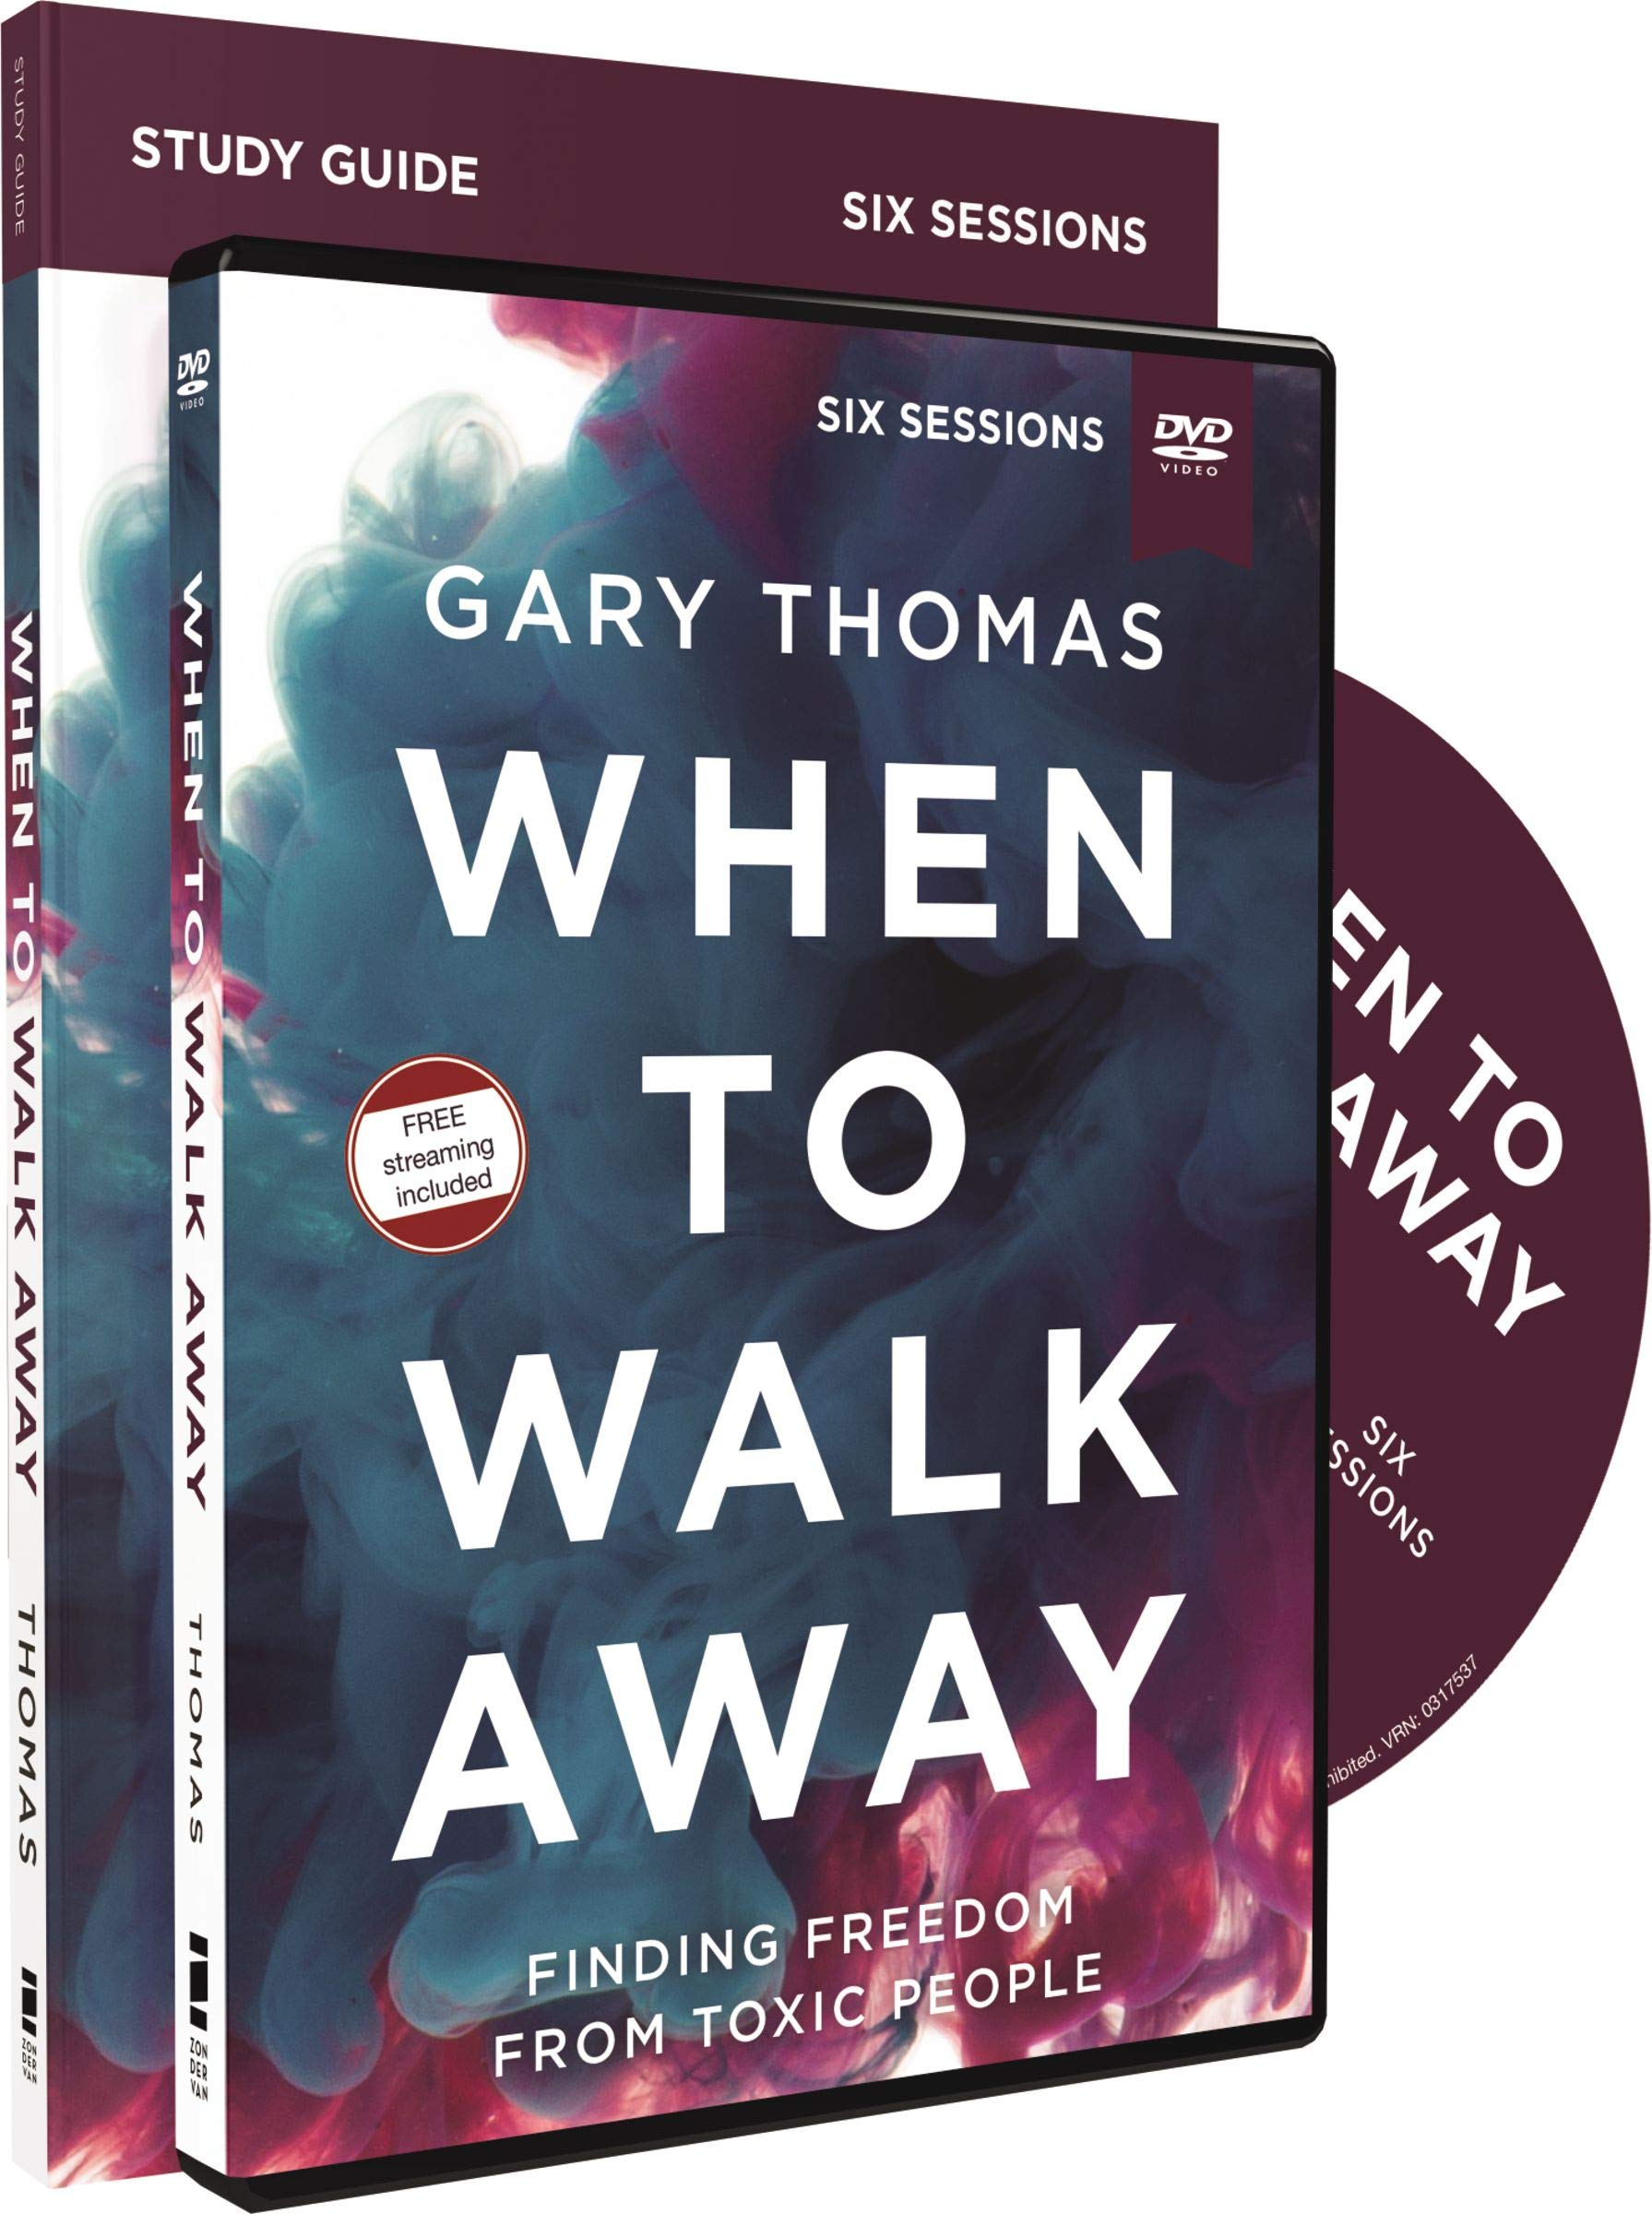 When to Walk Away Study Guide with DVD: Finding Freedom from Toxic People by HarperCollins Christian Pub.